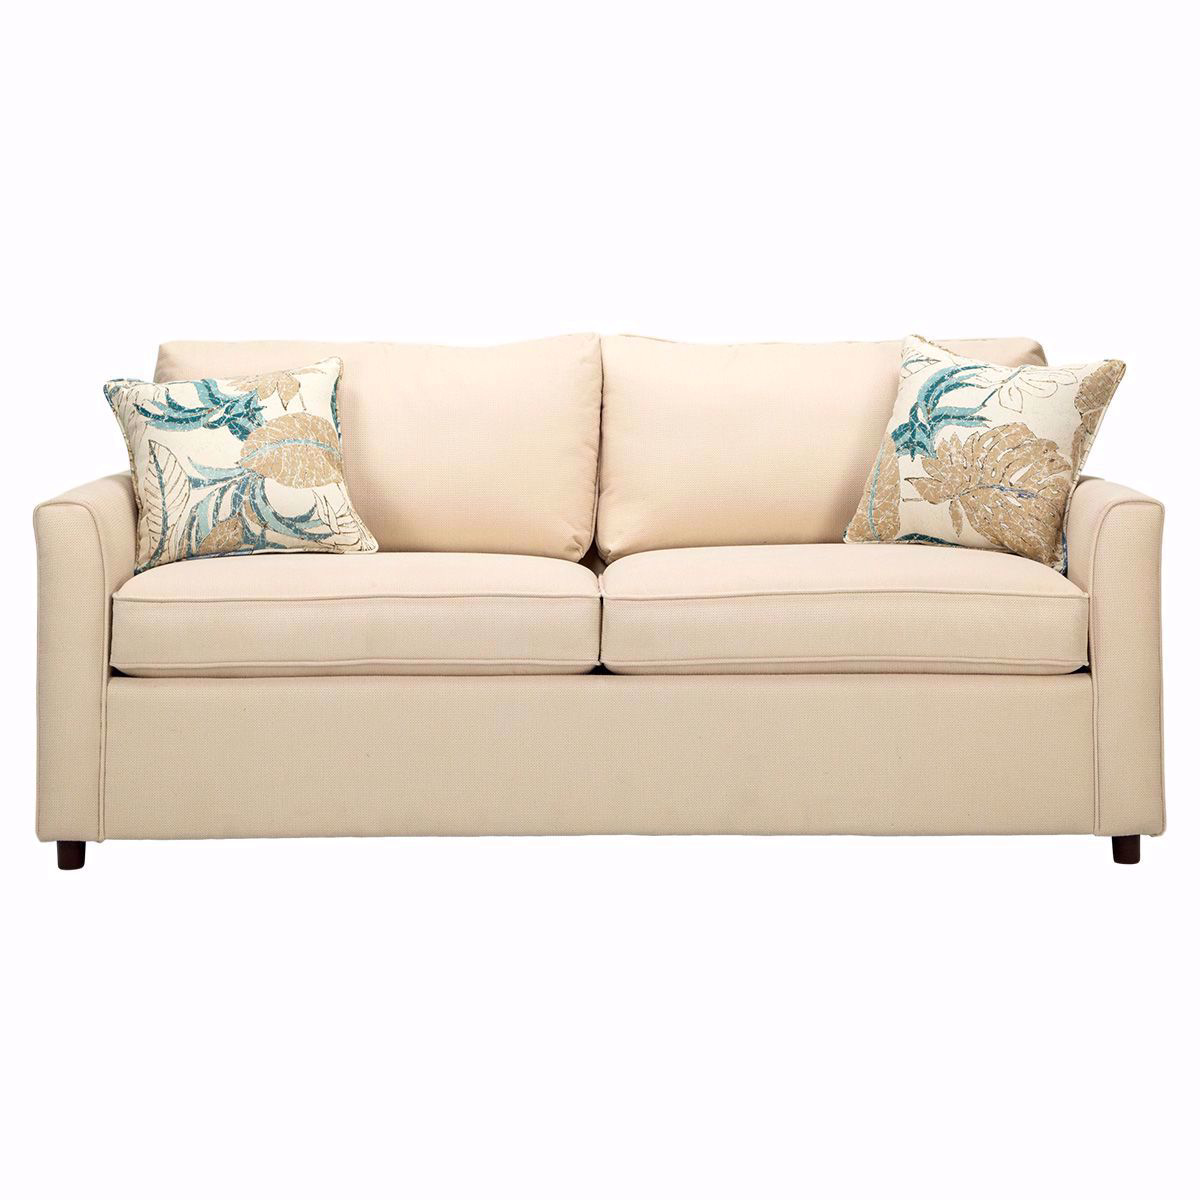 Picture of Charleston Queen Sleeper Sofa